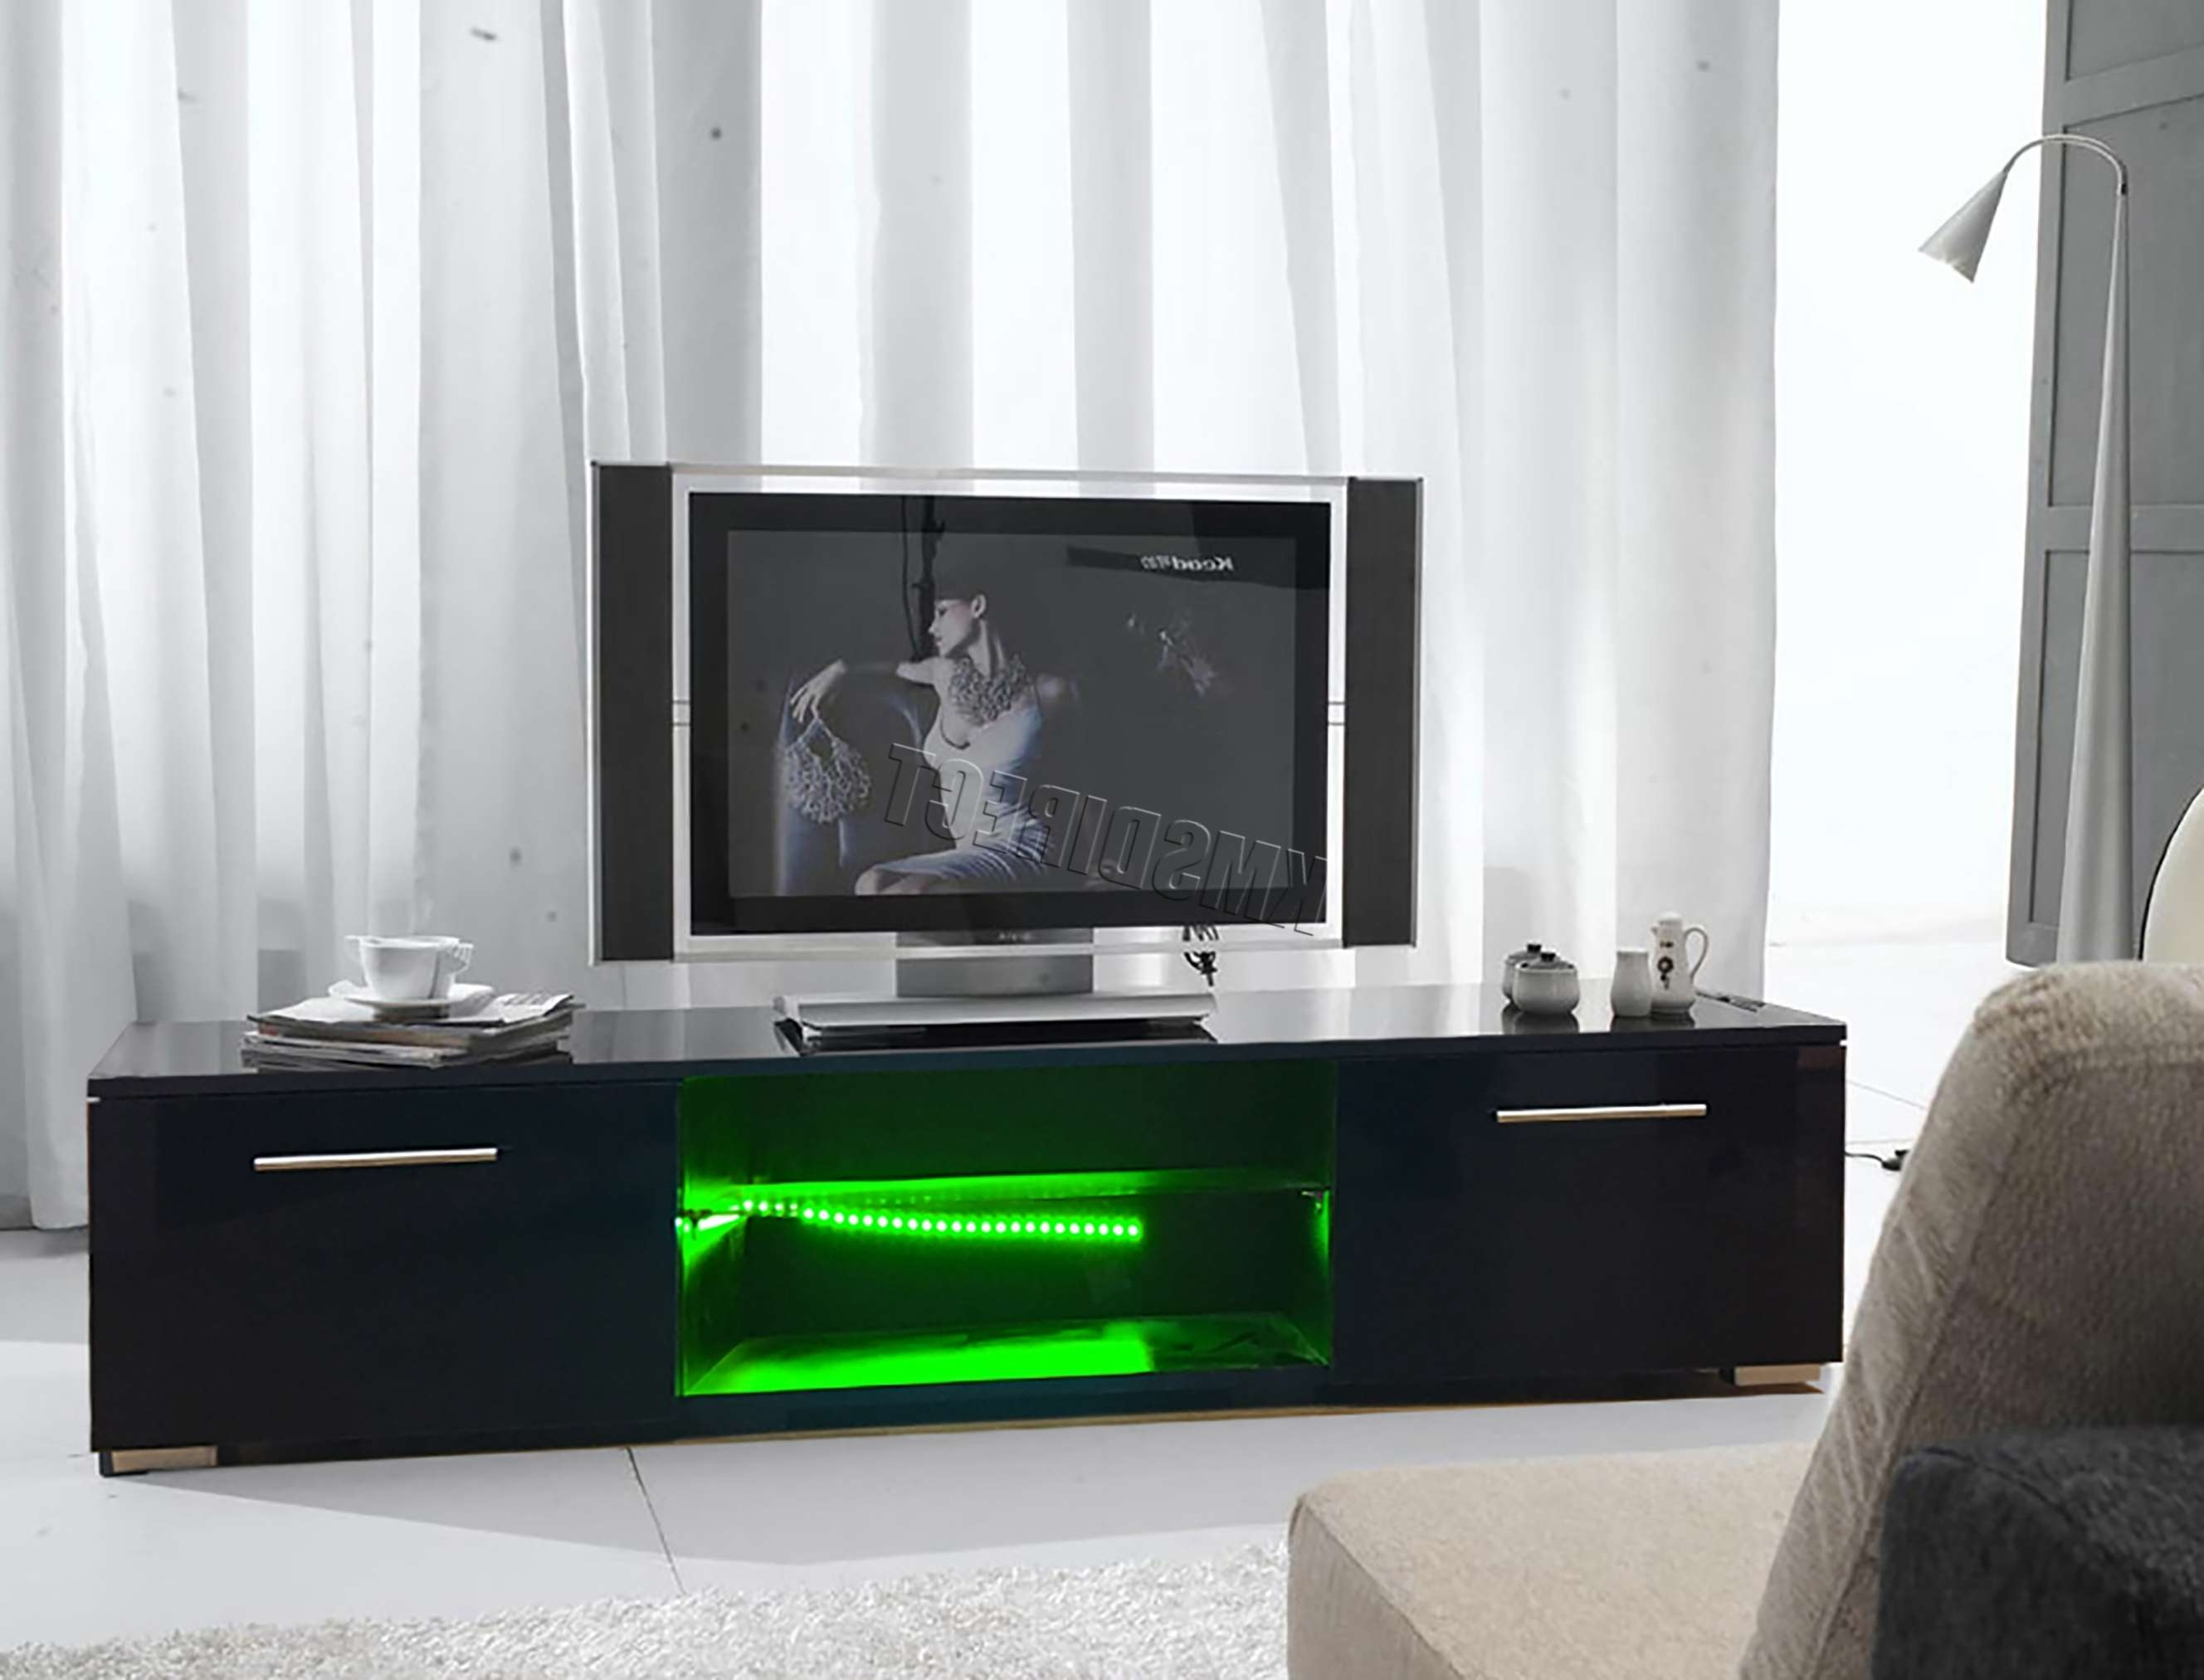 Foxhunter Modern High Gloss Matt Tv Cabinet Unit Stand Black Rgb Throughout Led Tv Cabinets (View 3 of 20)